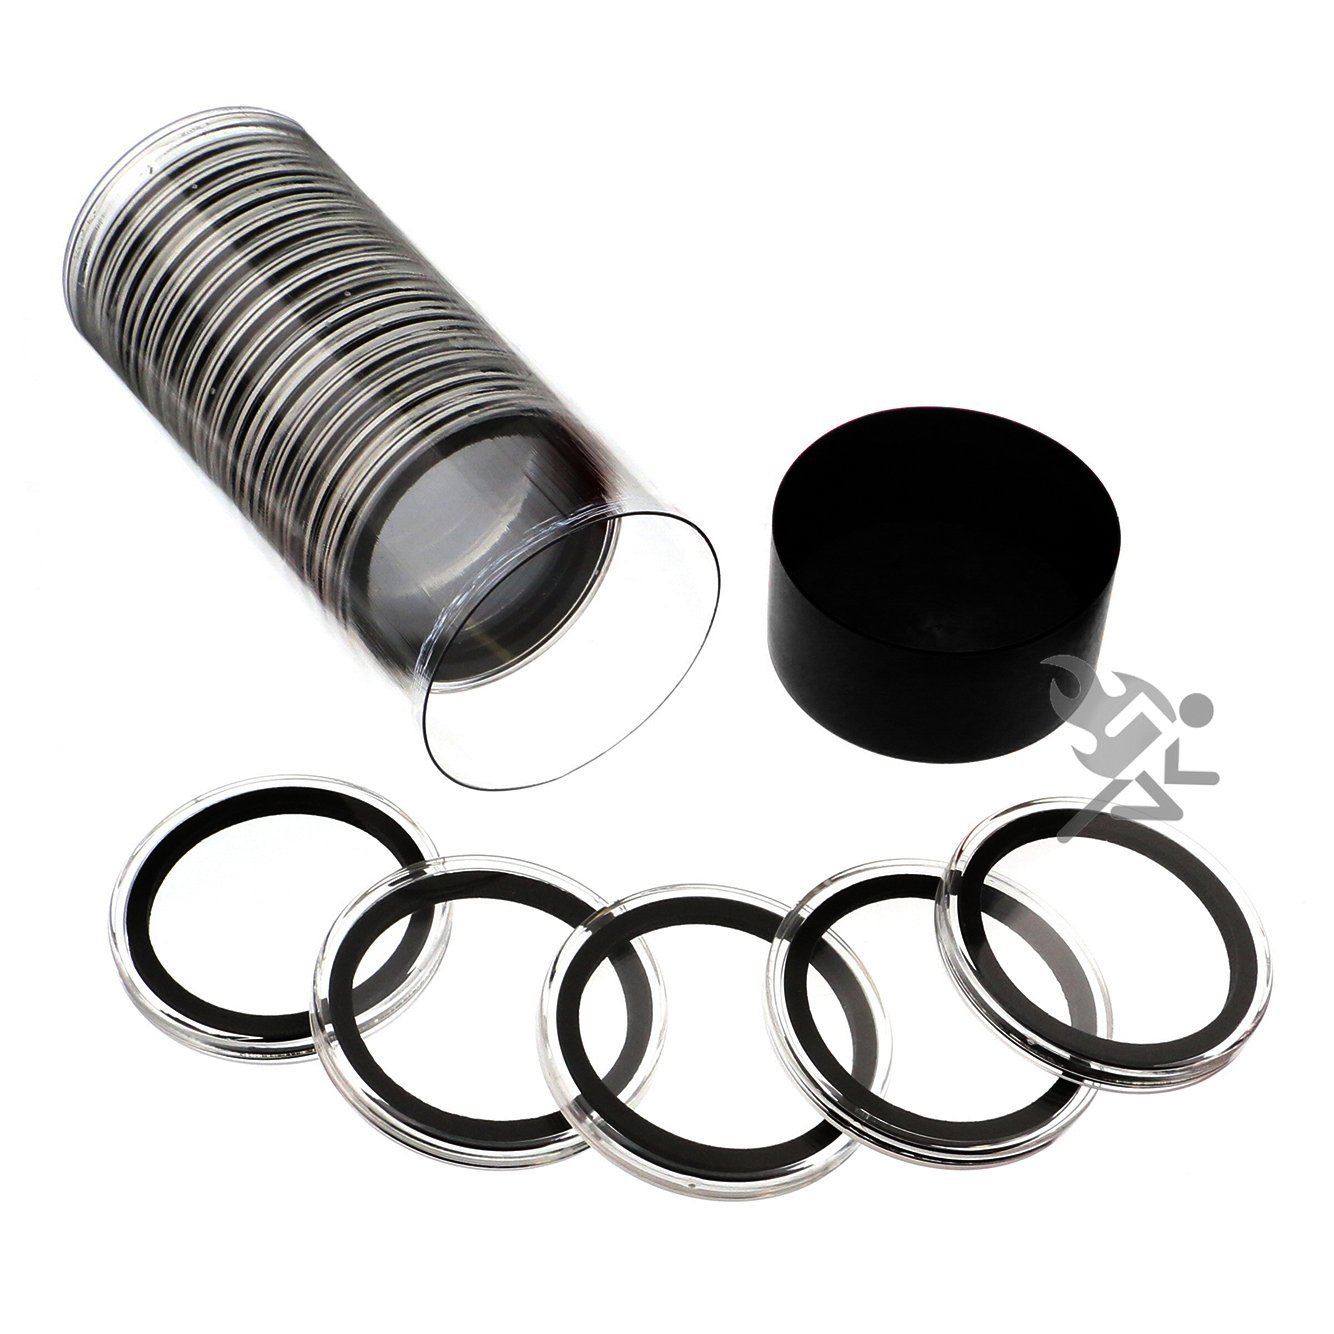 Black Lid Capsule Tube & 20 Air-Tite 40mm Black Ring Coin Holders for 1oz Silver Eagles